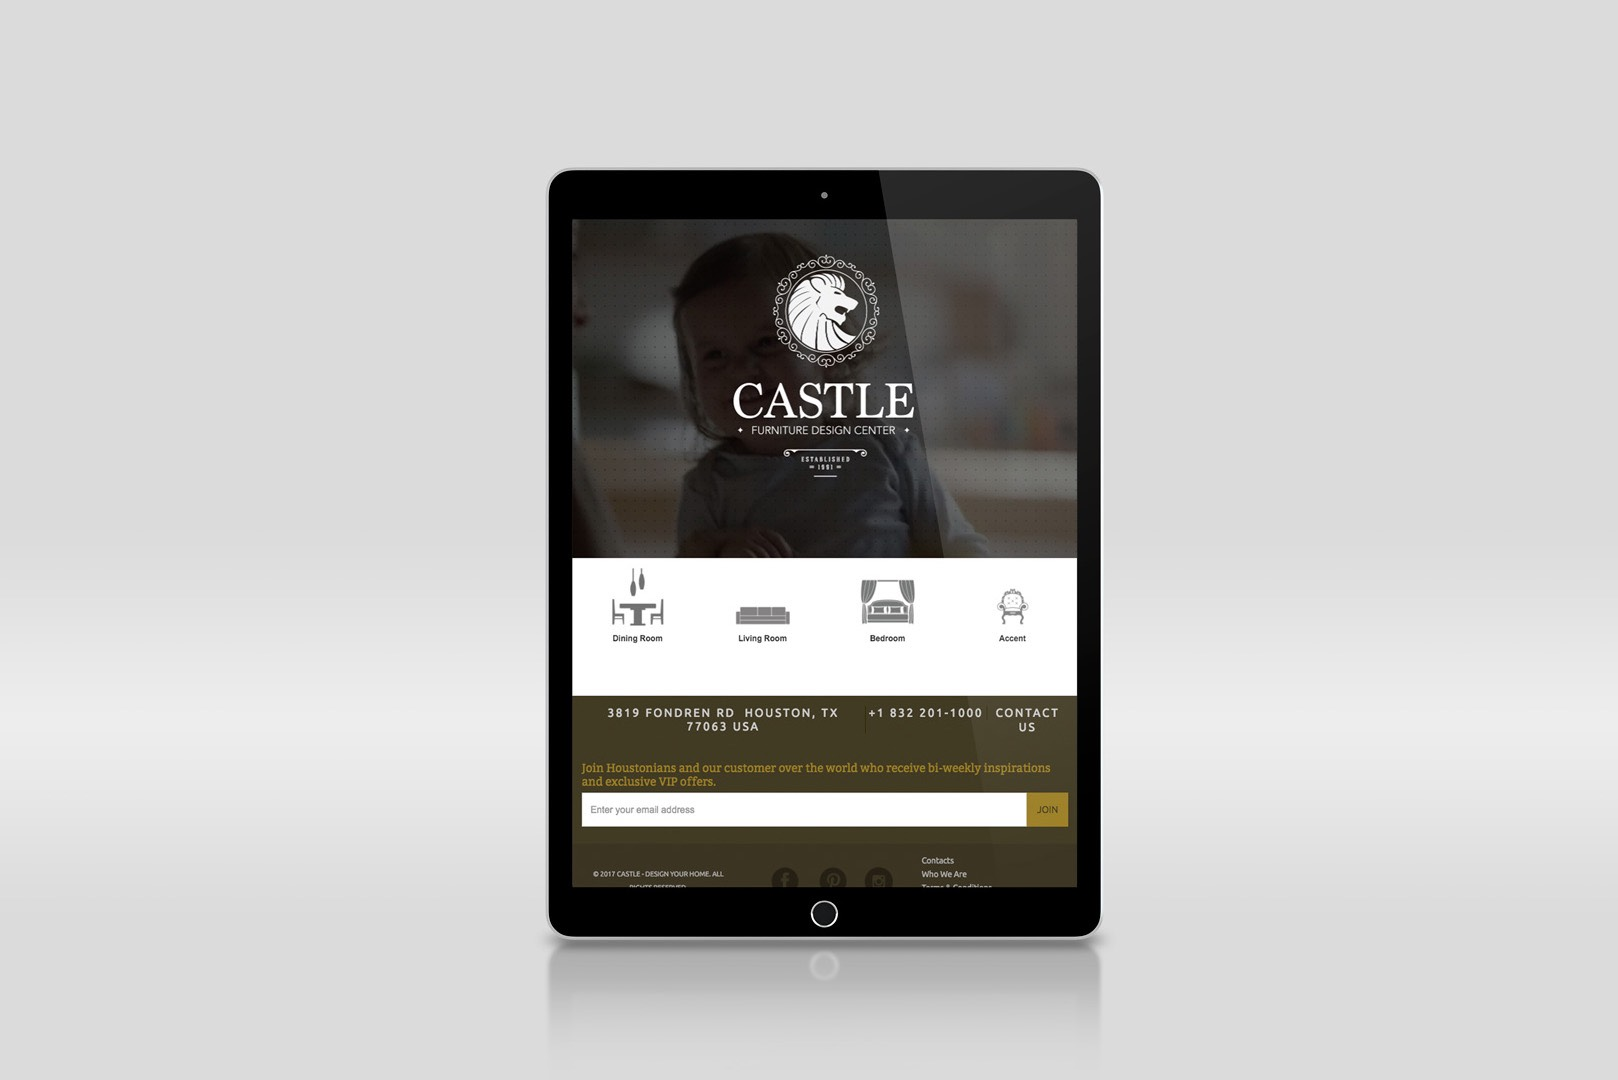 responsive ipad website design